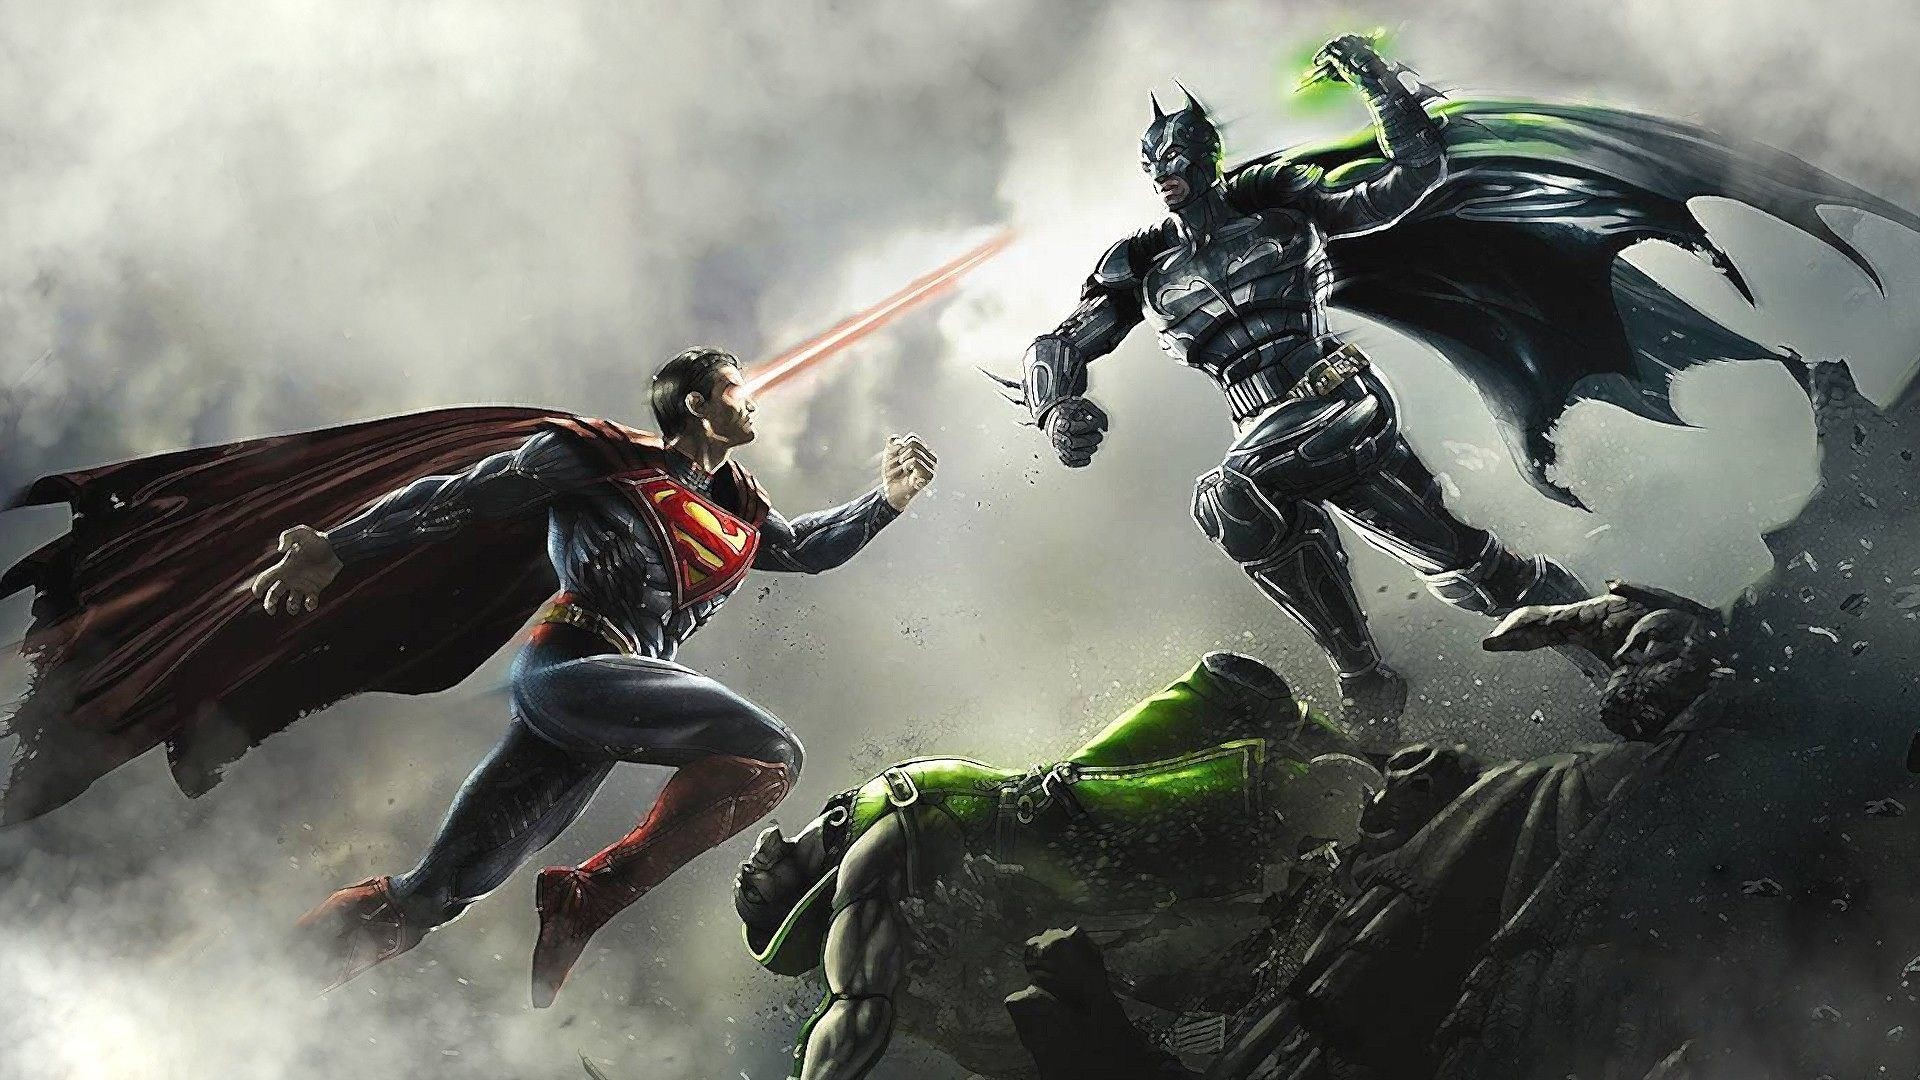 Res: 1920x1080, Batman v Superman Dawn of Justice High Quality Wallpapers · Download ·